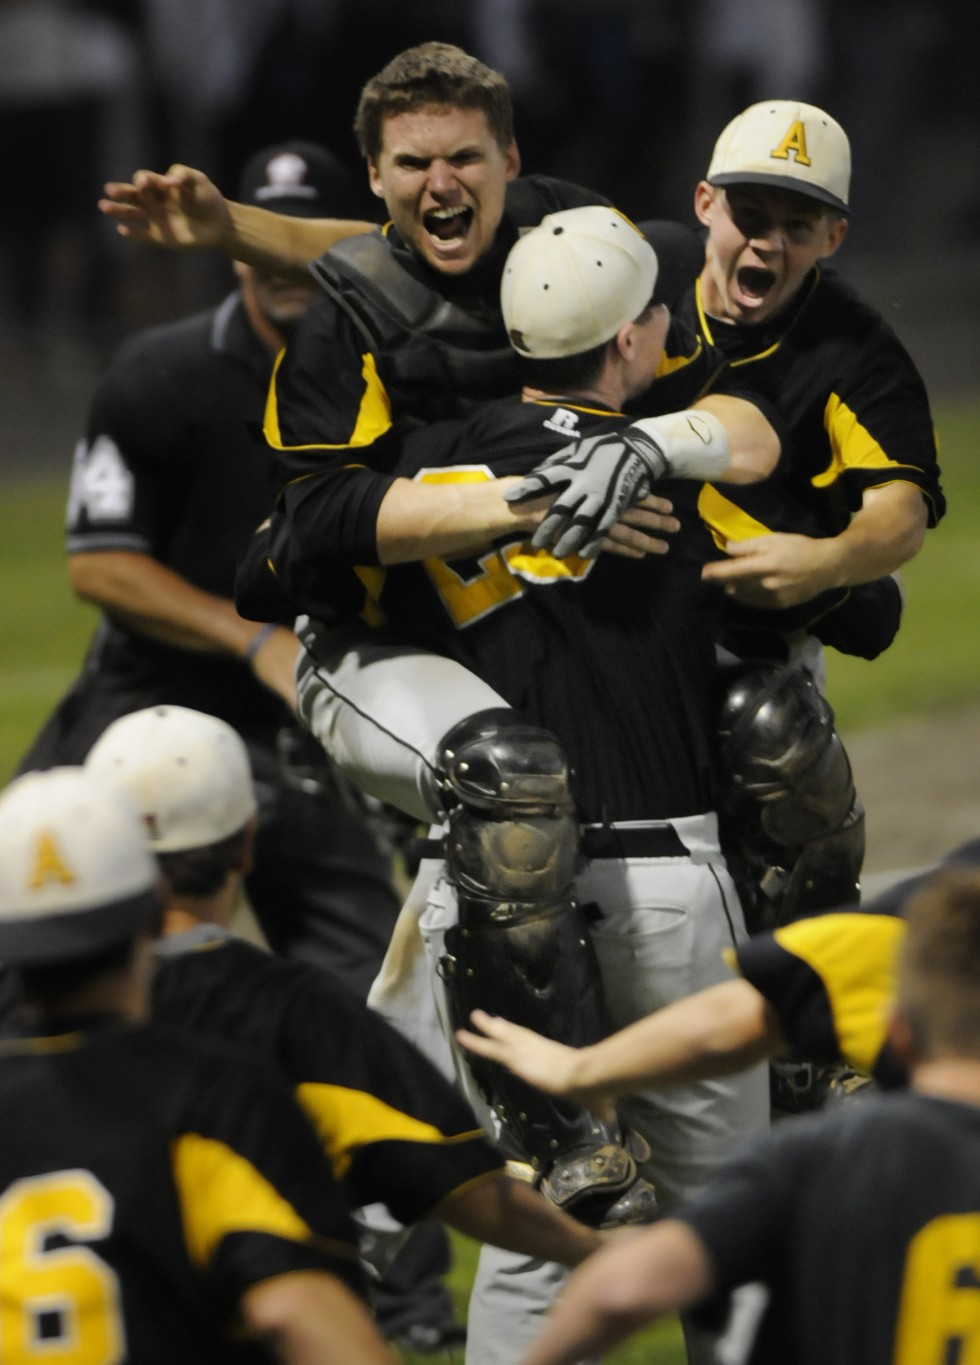 Amity catcher, Christopher Cimmino, 7, left, and third baseman, Keith Klebart, right, jump on winning pitcher Michael Concato after the win. Amity High School beat Southington High School in the CIAC Class LL Baseball Championship in a game played at Palmer Field in Middletown by a score of 4 to 0.